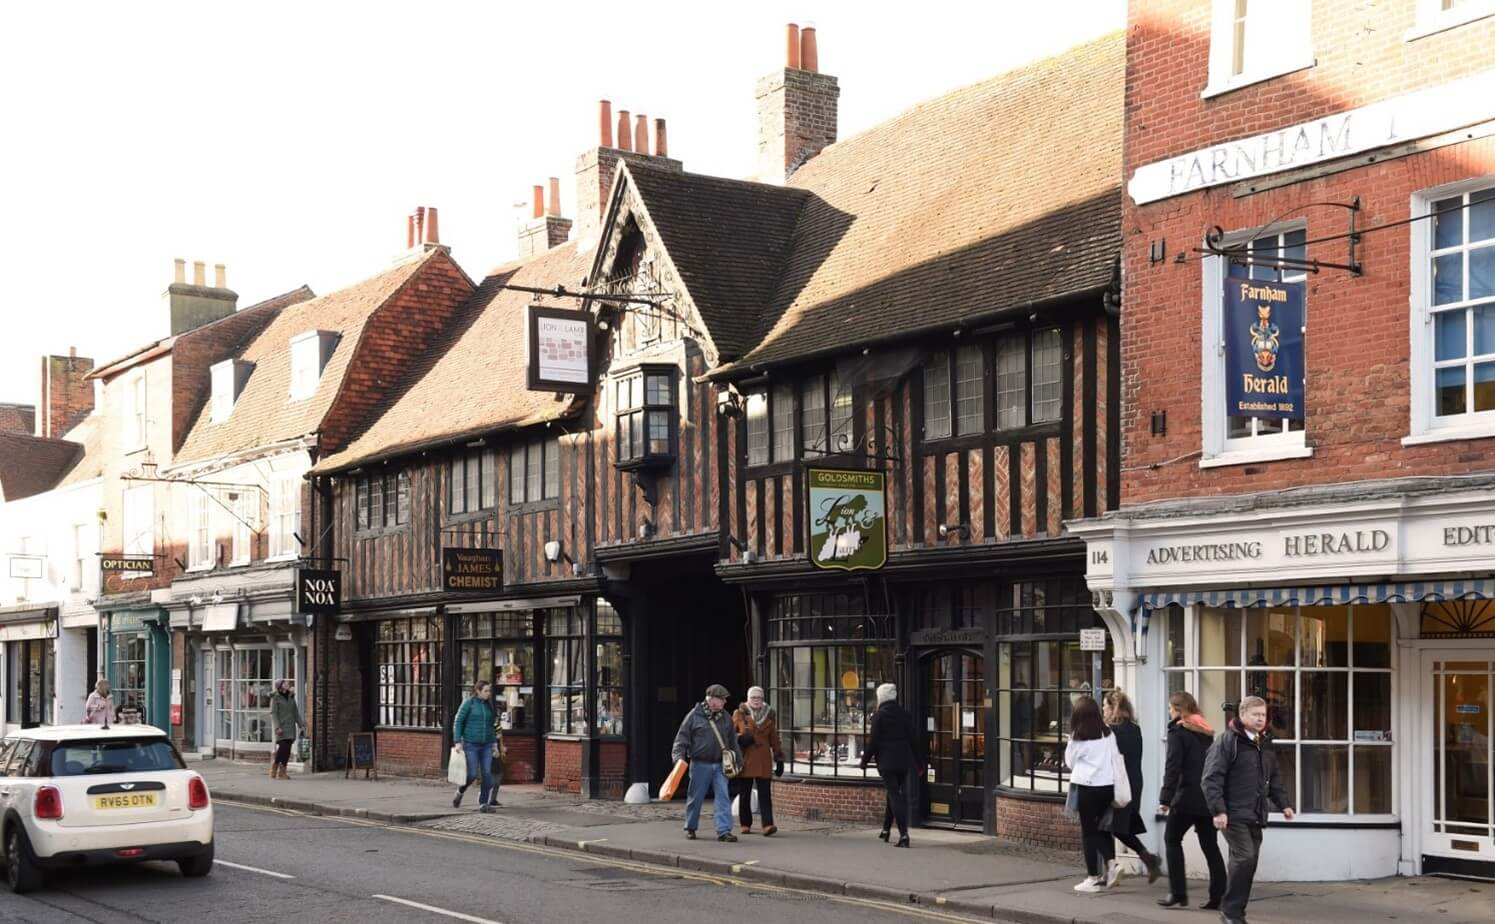 Farnham vacancy rate considerably lower than national average